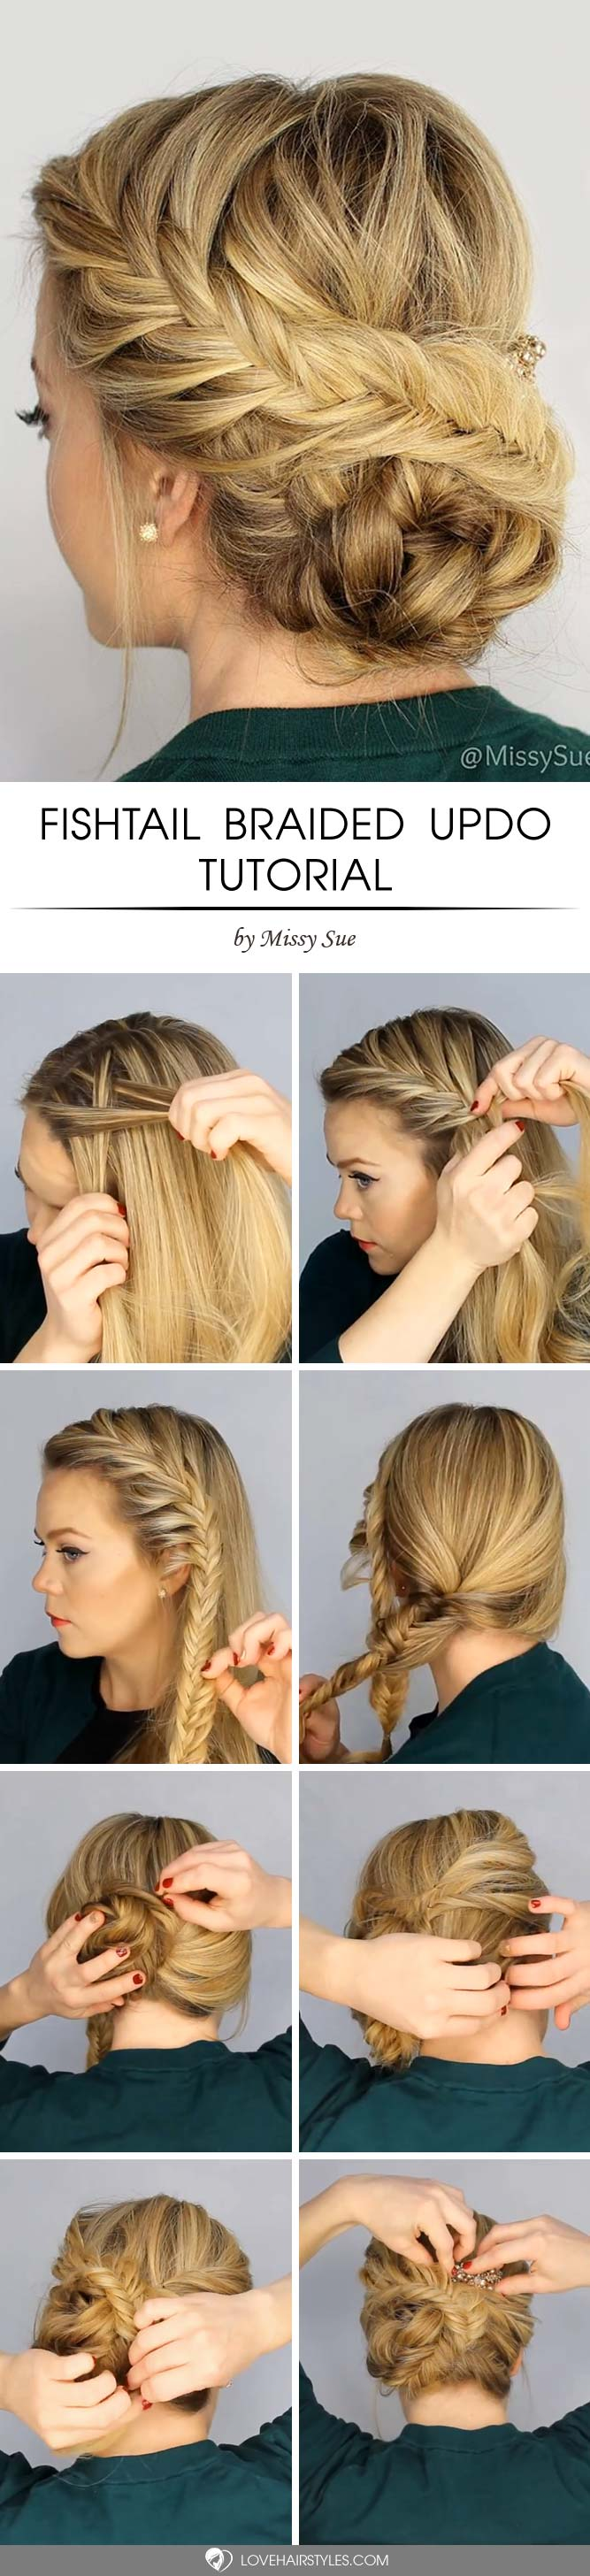 Fishtail Braided Updo #howtofishtailbraid #fishtailbraid #braids #hairstyles #tutorials